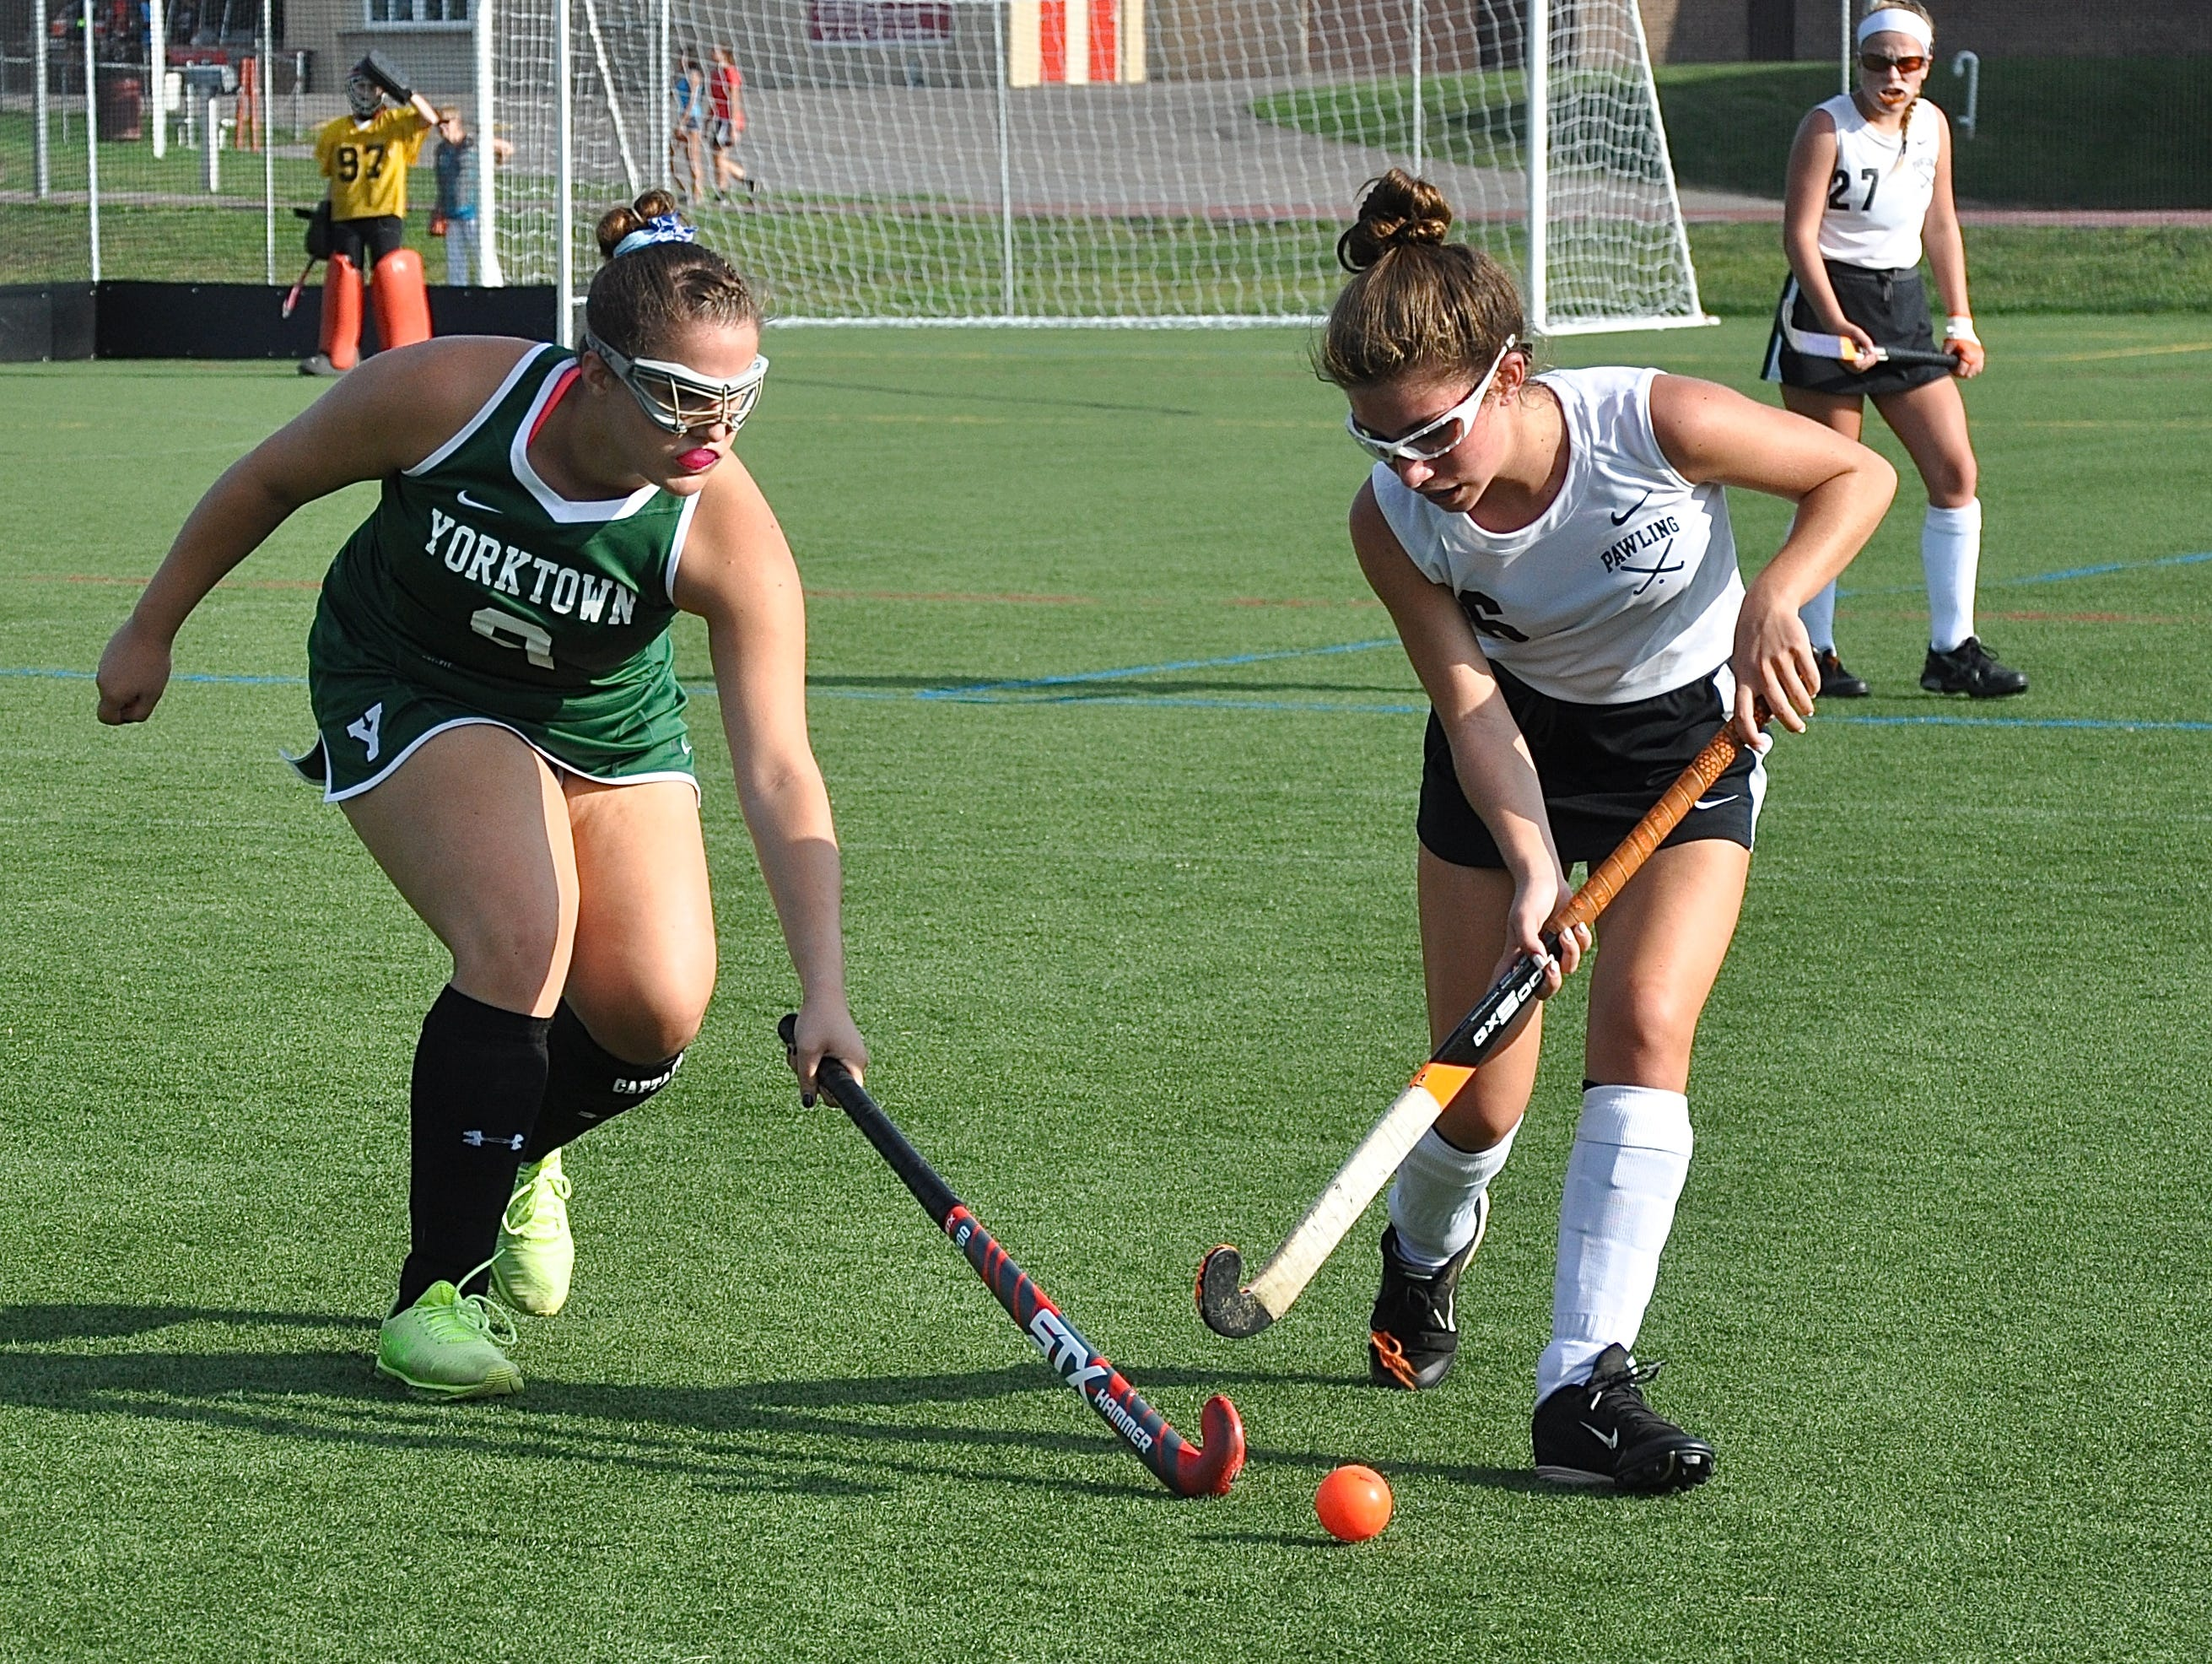 Cornhusker Natalie Grammer tries to stop Pawling's Frankie Fleming during the Somers Tournament consolation game that Pawling won.